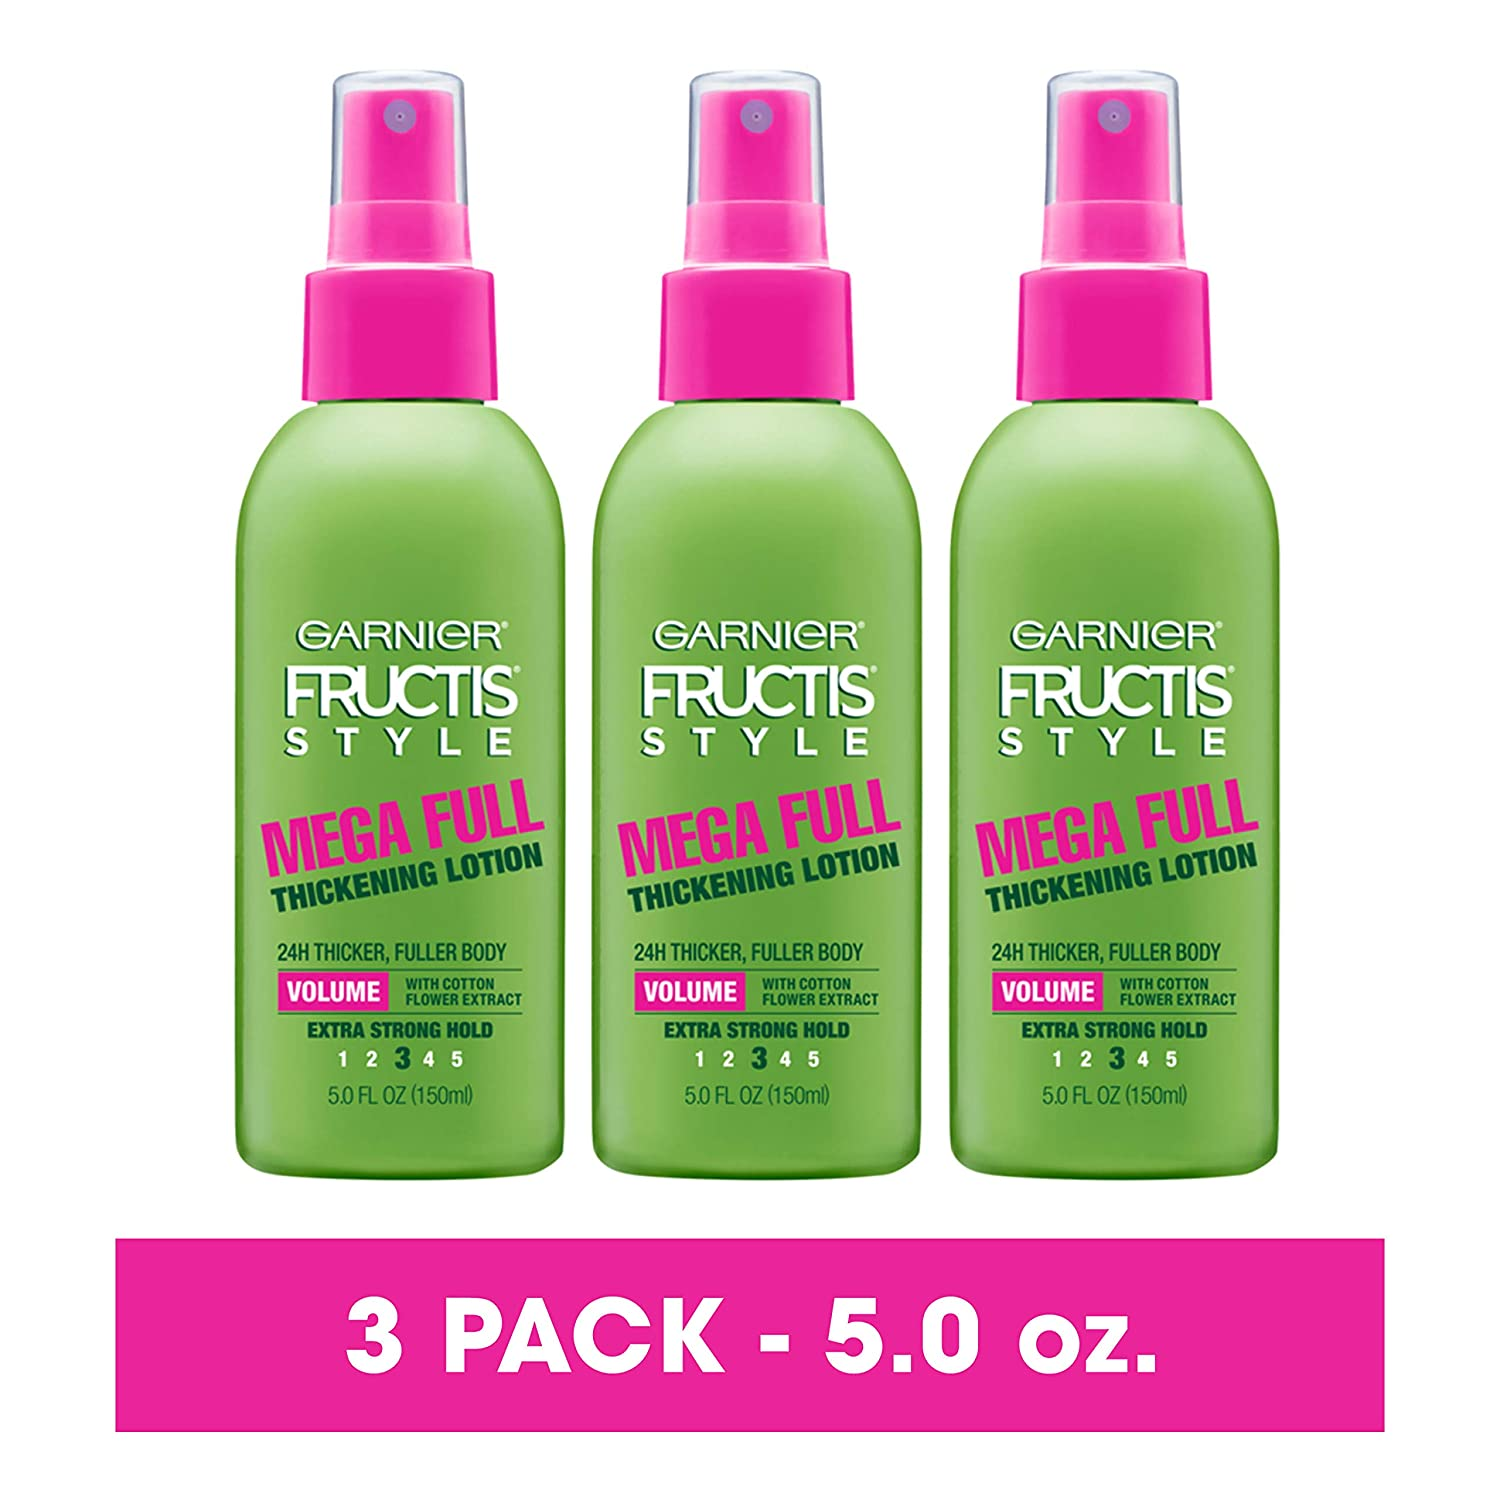 Garnier Fructis Style Mega Full Thickening Lotion for All Hair Types, 5 Ounce (3 Count)